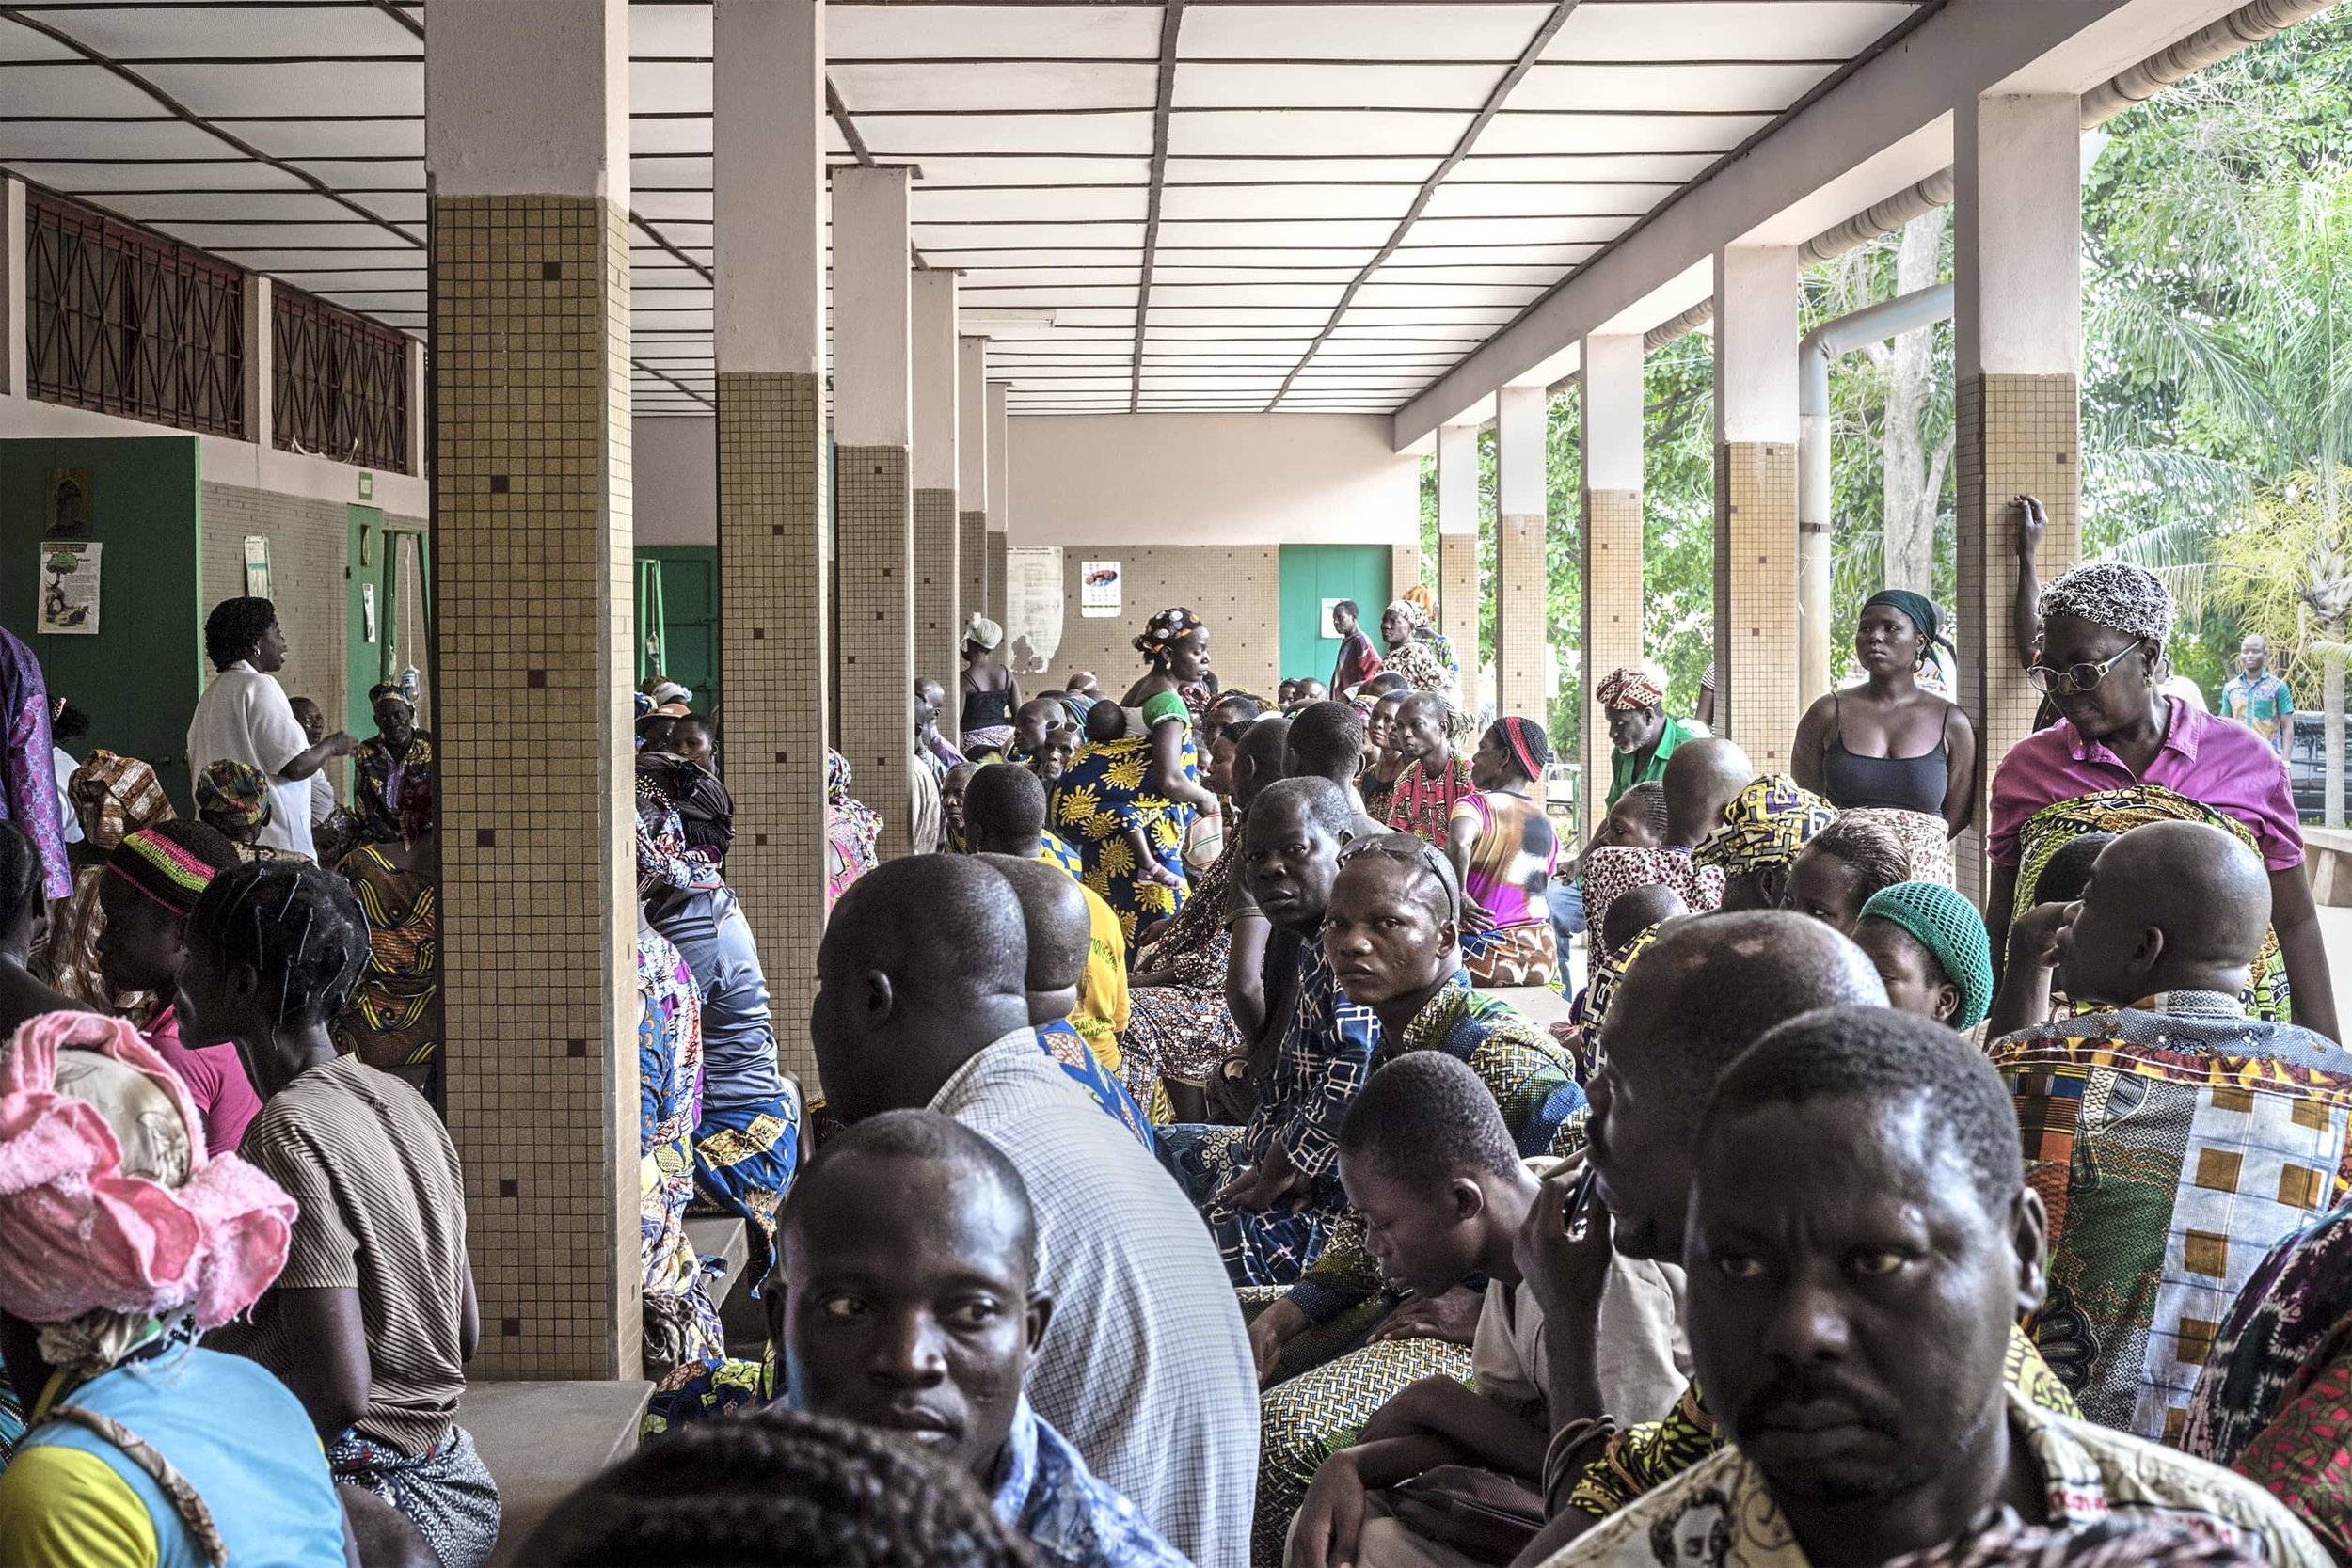 People with the most diverse pathologies wait for consultations with the medical personnel at the multifunctional unit in Gbemontin.